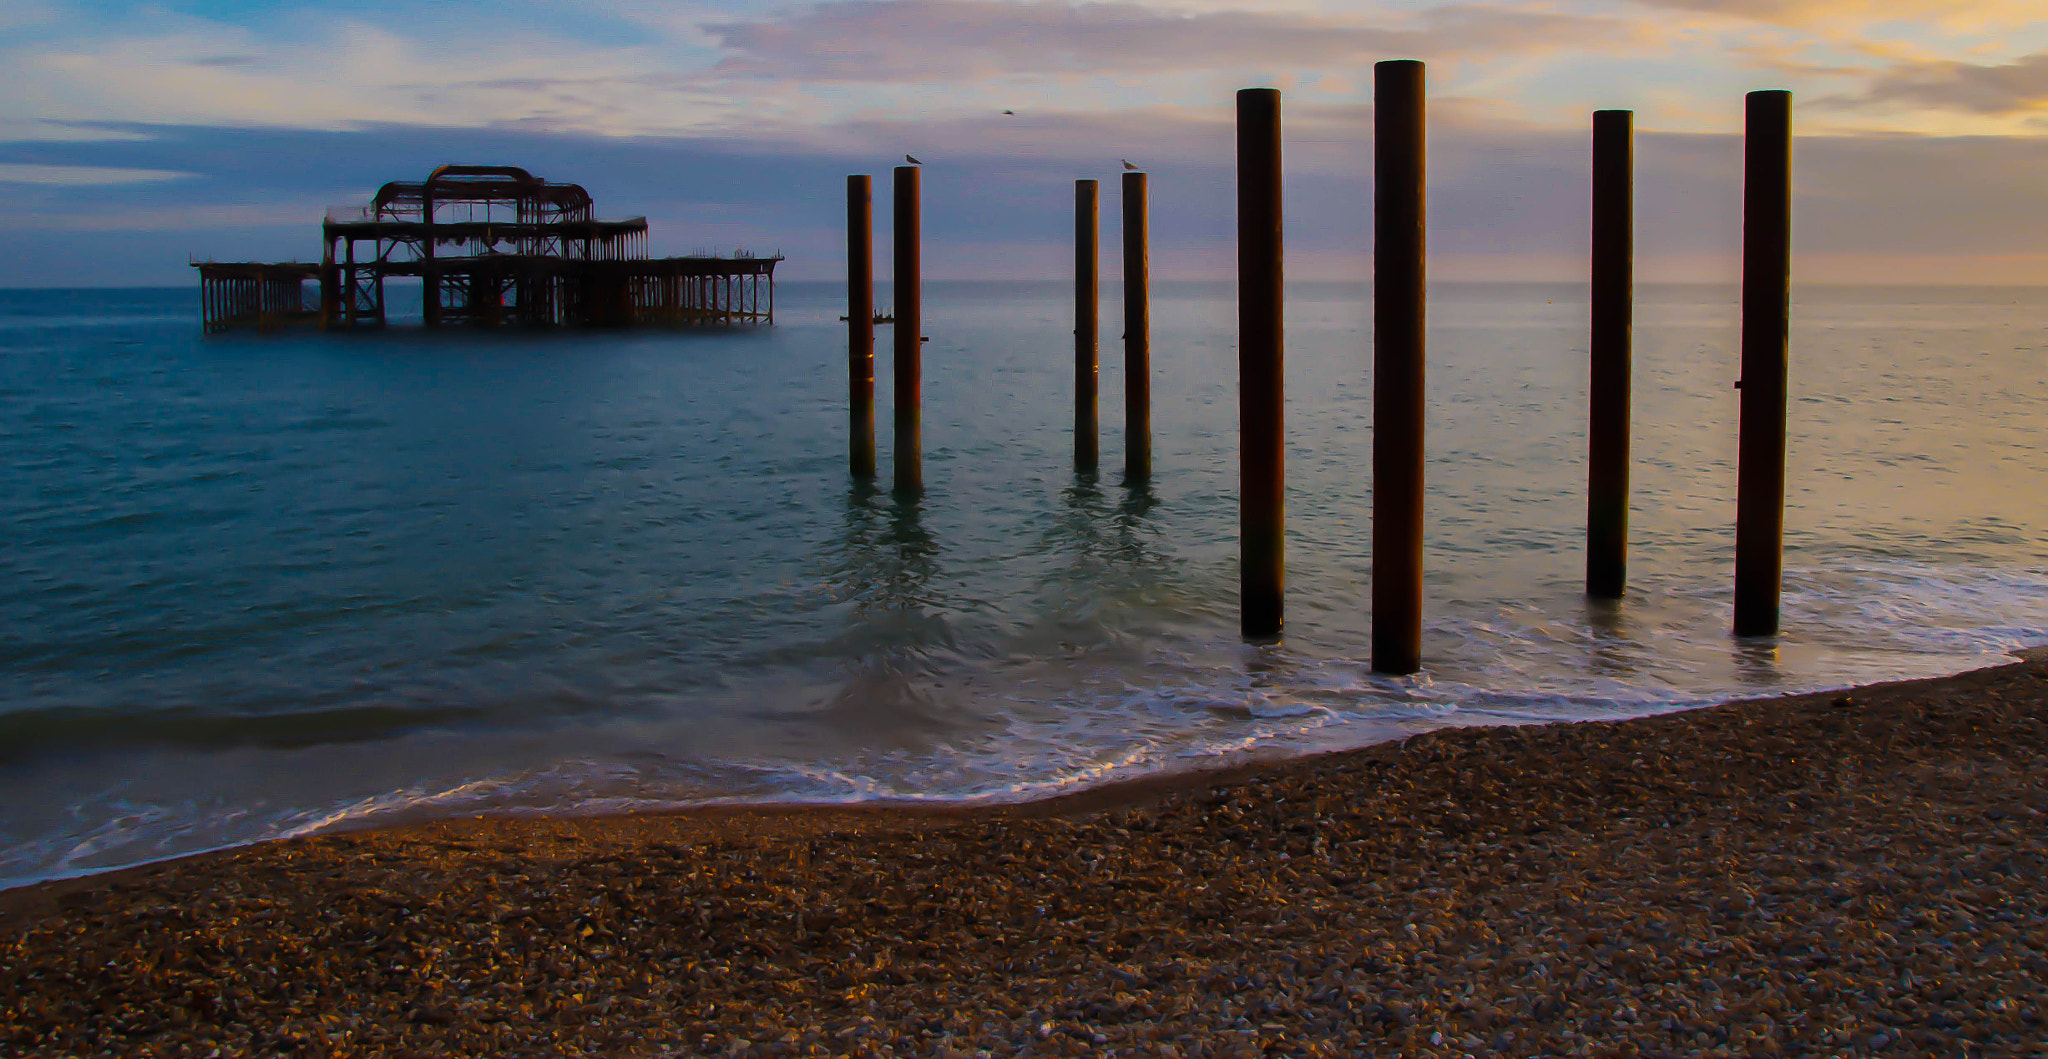 Photograph West Pier, brighton by julian john on 500px